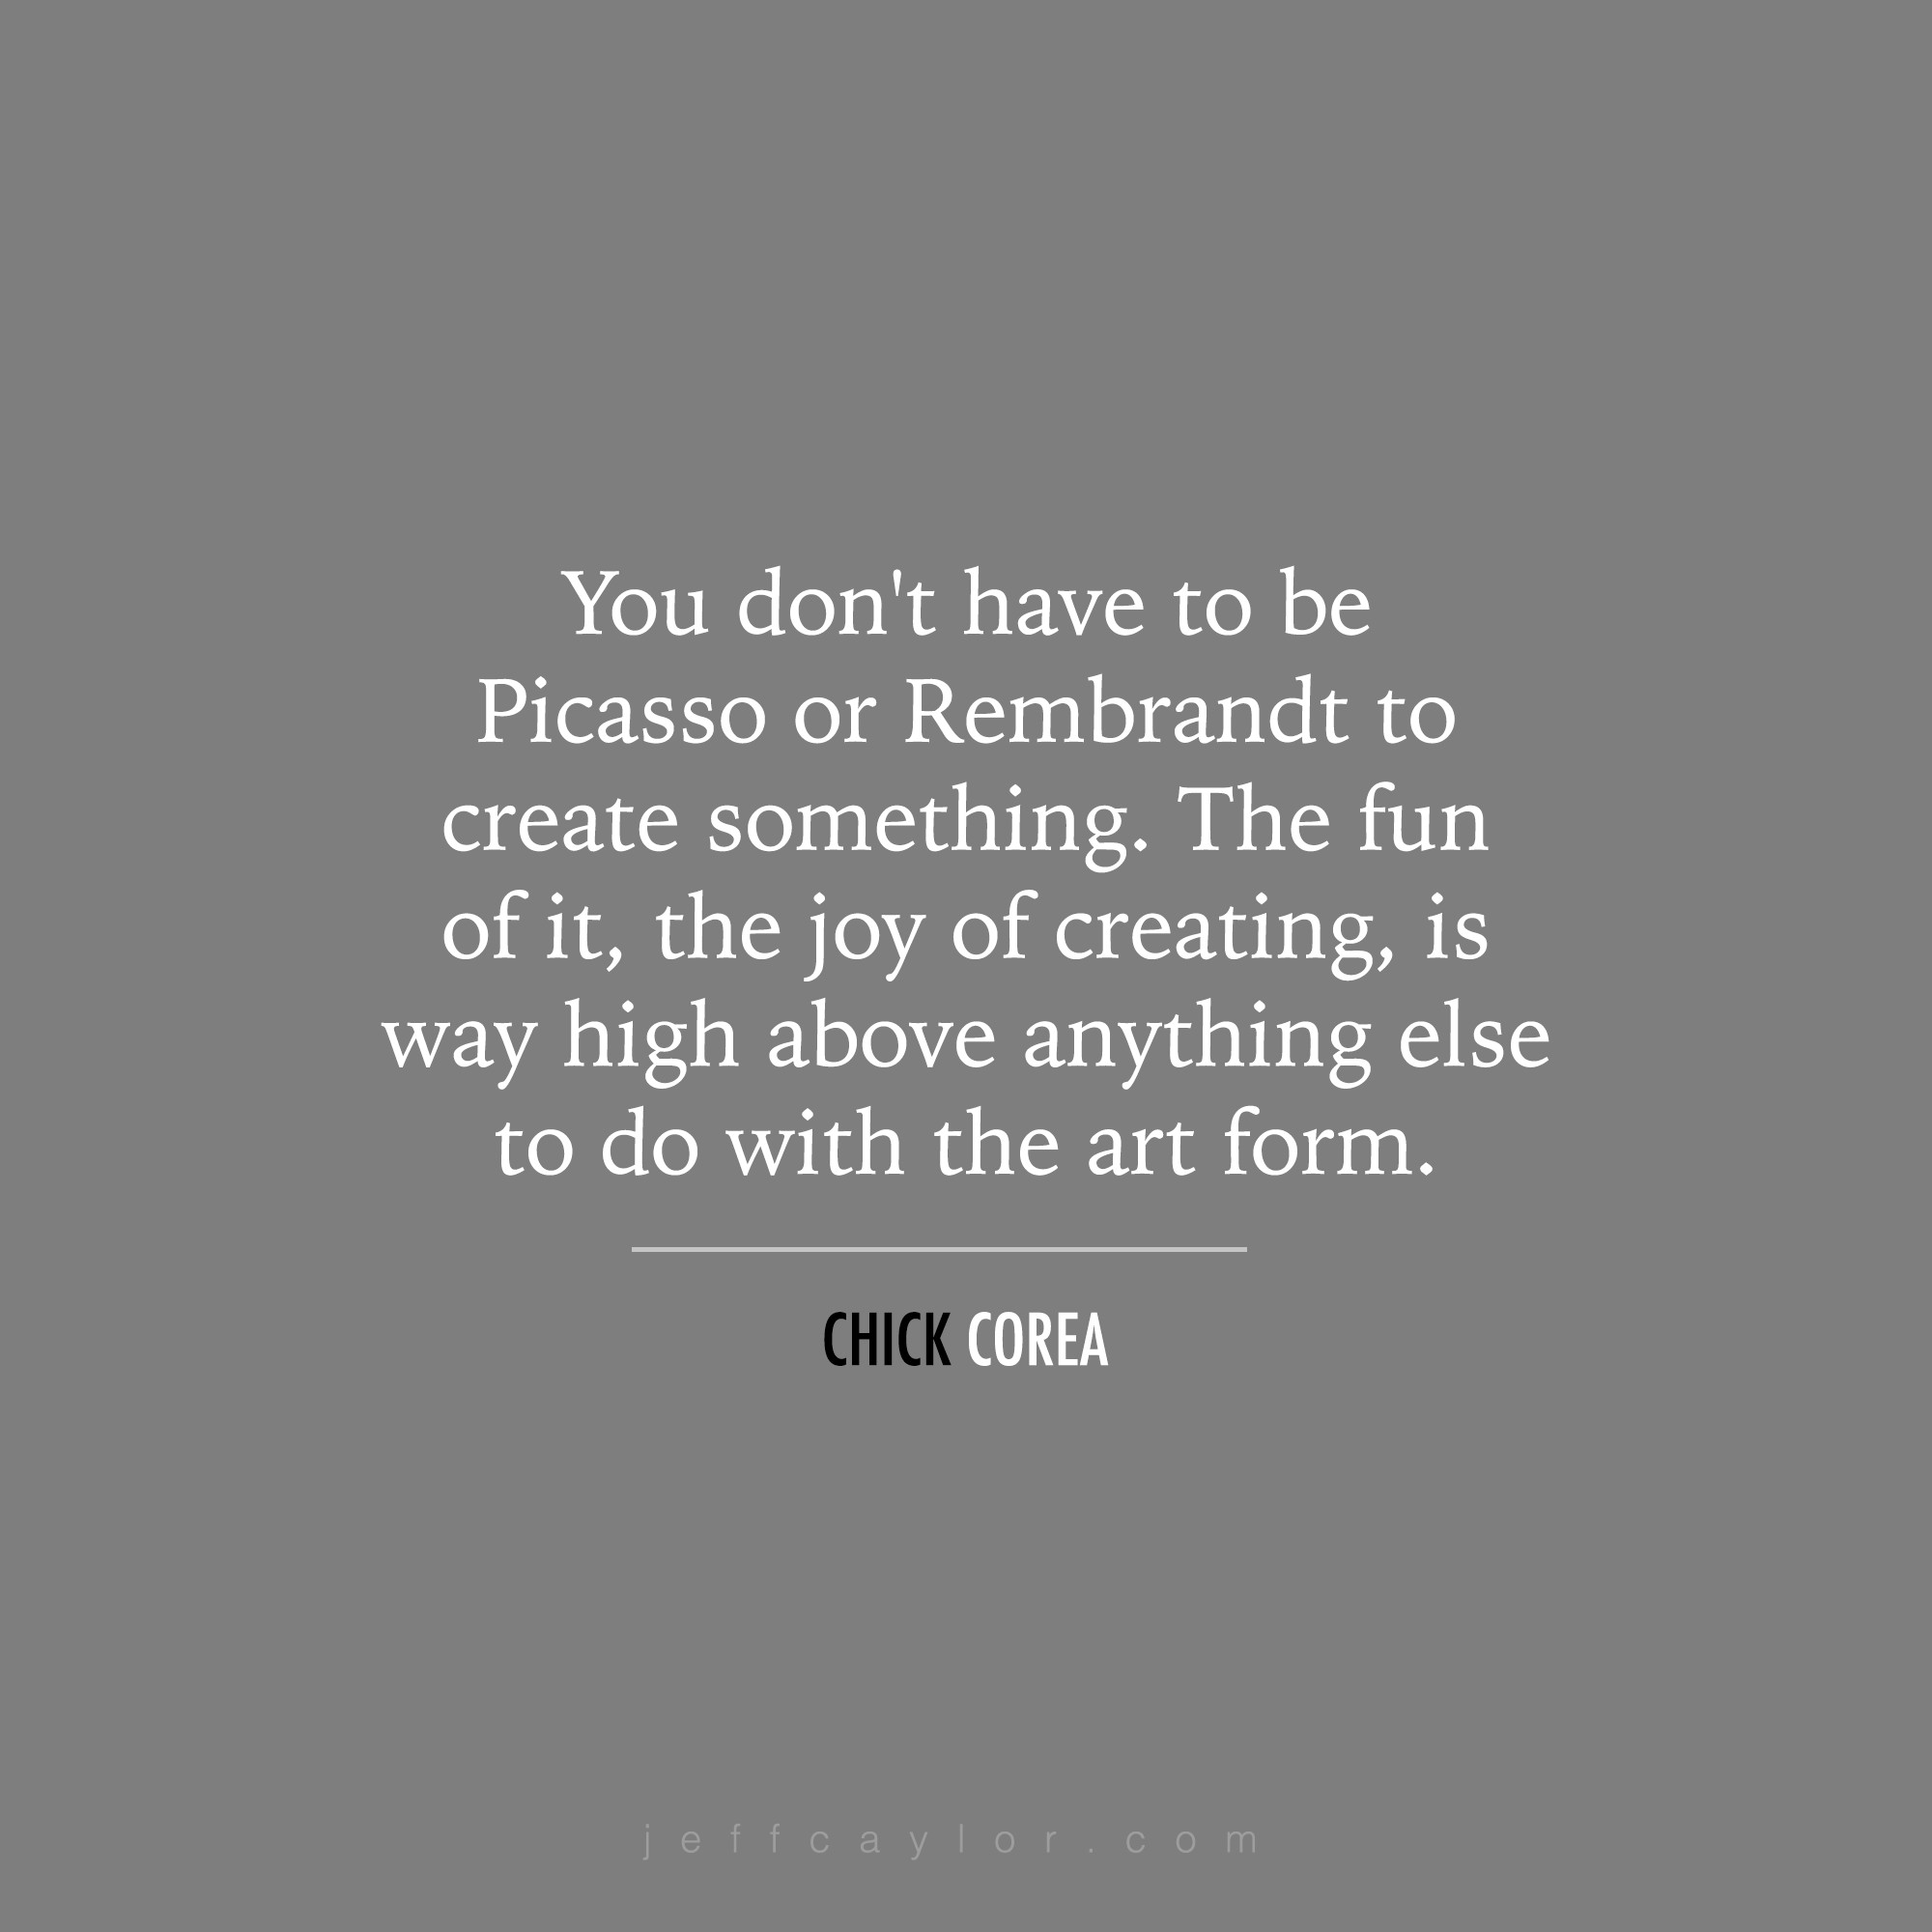 """""""You don't have to be Picasso or Rembrandt to create something. The fun of it, the joy of creating, is way high above anything else to do with the art form."""" - Chick Corea"""